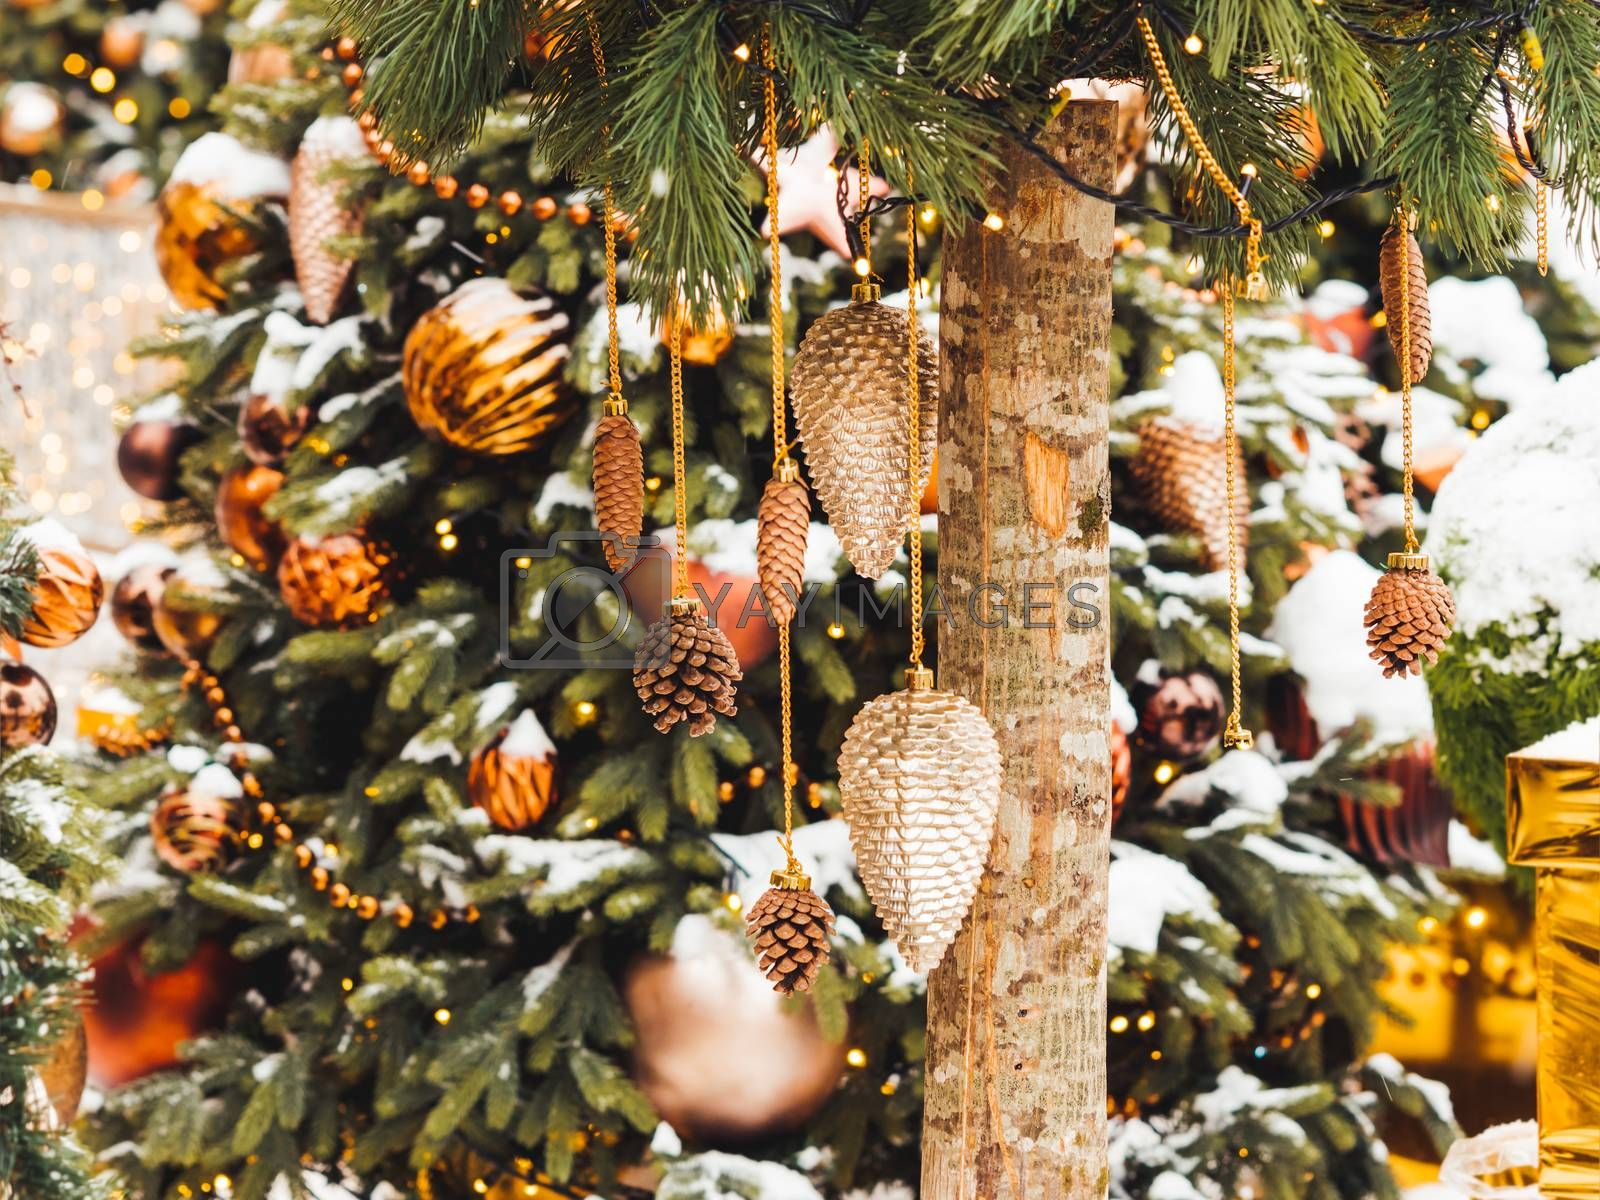 Christmas tree with golden and bronze decorations. Outdoor decorative pine cones and balls for New Year celebration.